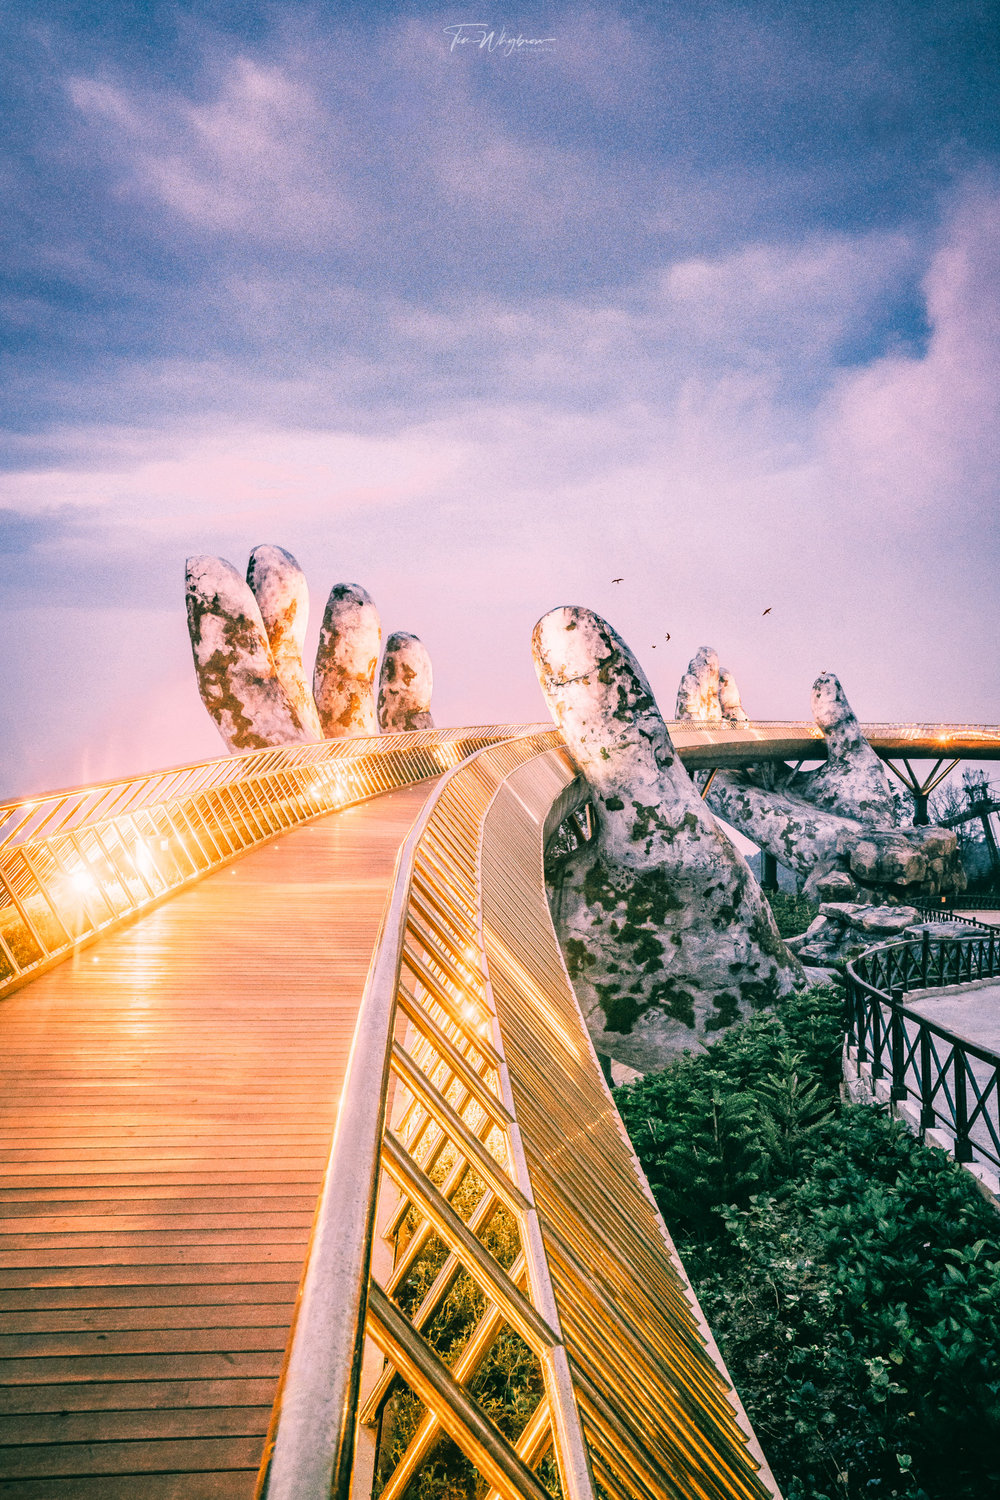 Golden Hand Bridge Vietnam | Instagram: @timwhybrow_